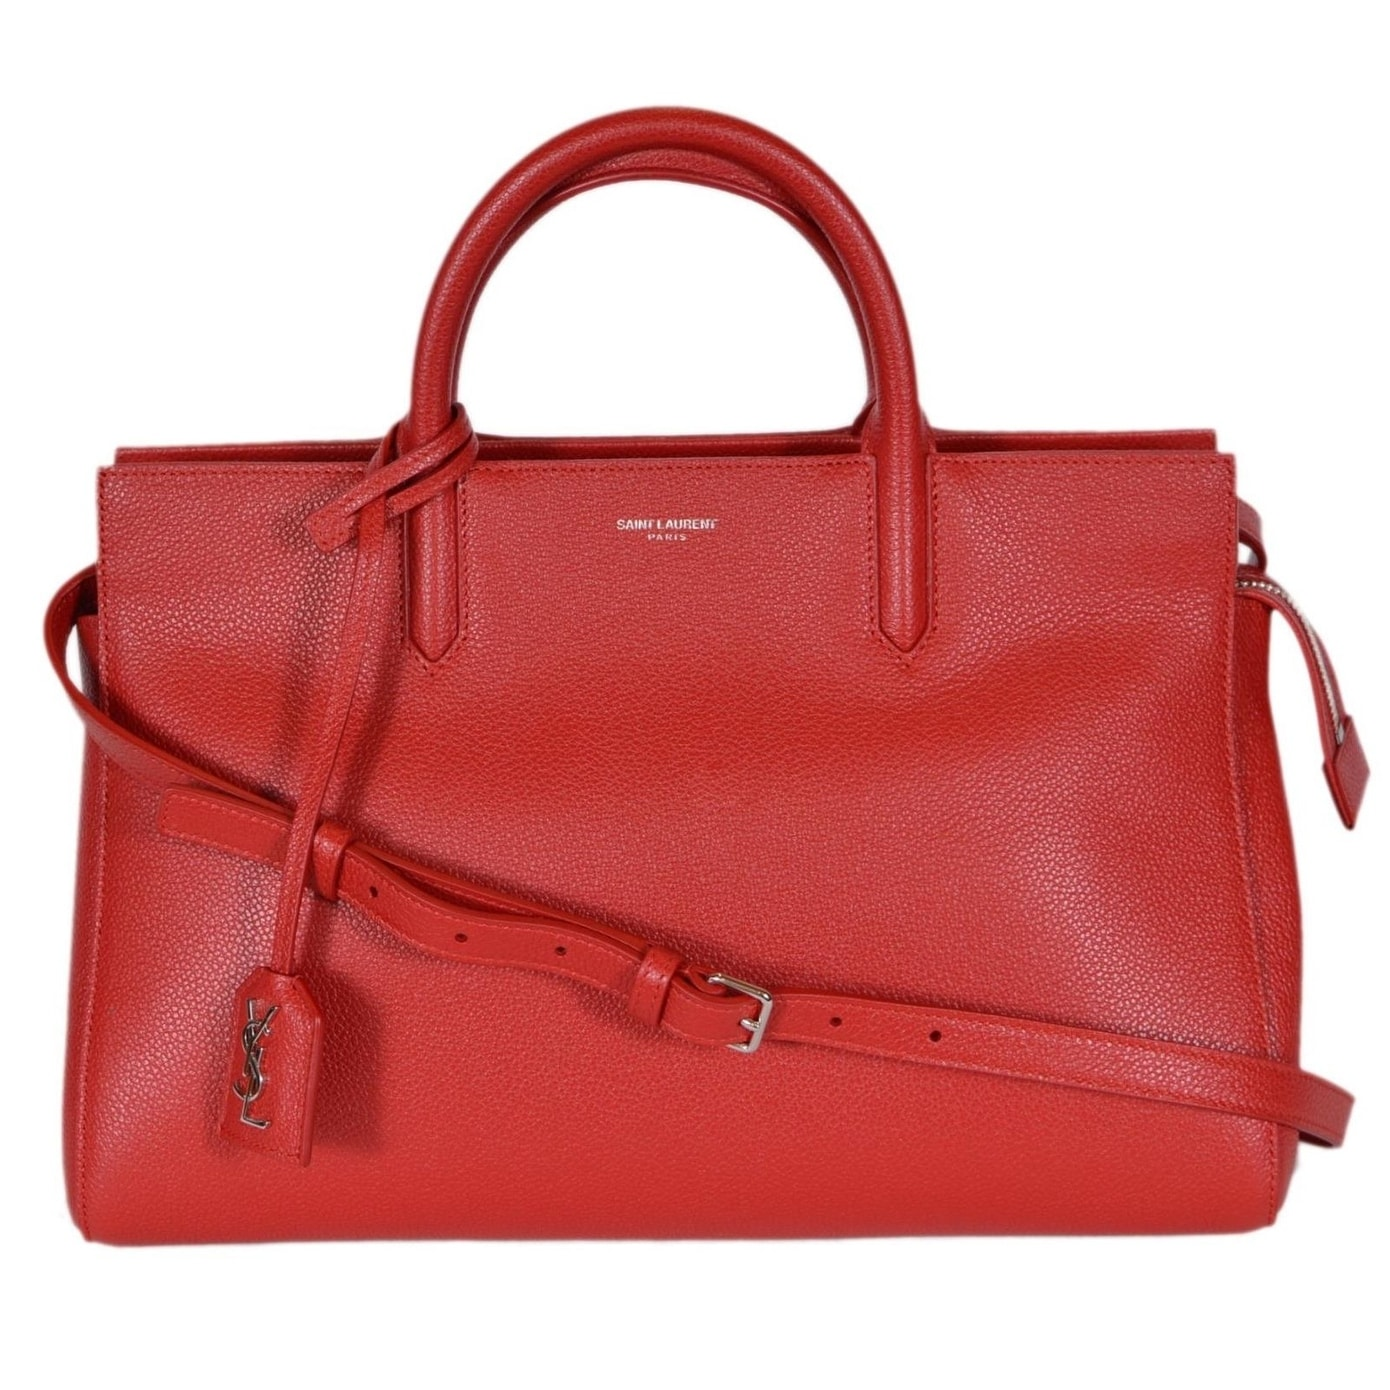 ad8057ebdc3 Shop Saint Laurent YSL 400413 Small Red Leather Cabas Rive Gauche Purse  Handbag - On Sale - Free Shipping Today - Overstock.com - 21945715